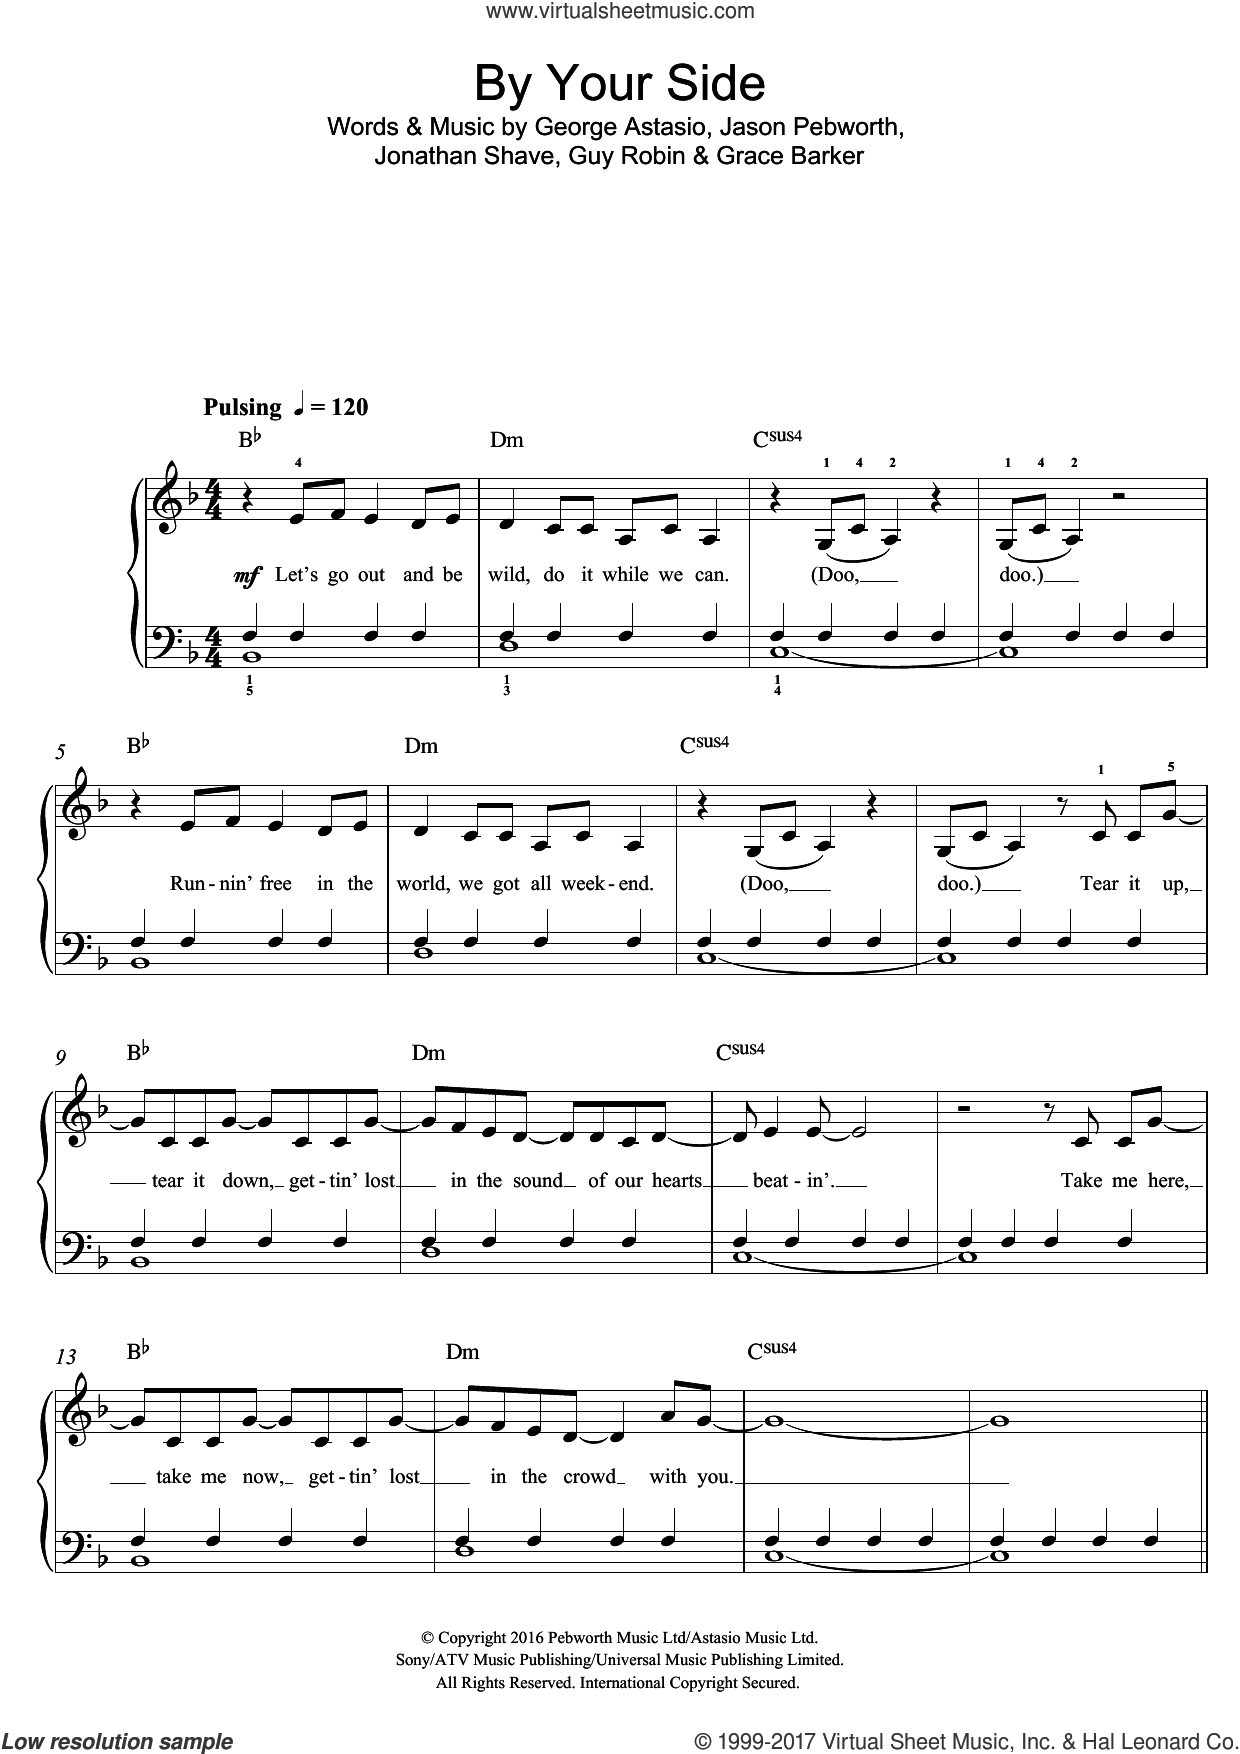 By Your Side (featuring RAYE) sheet music for piano solo (beginners) by Jonas Blue, Don Raye, George Astasio, Grace Barker, Guy Robin, Jason Pebworth and Jonathan Shave, beginner piano (beginners)